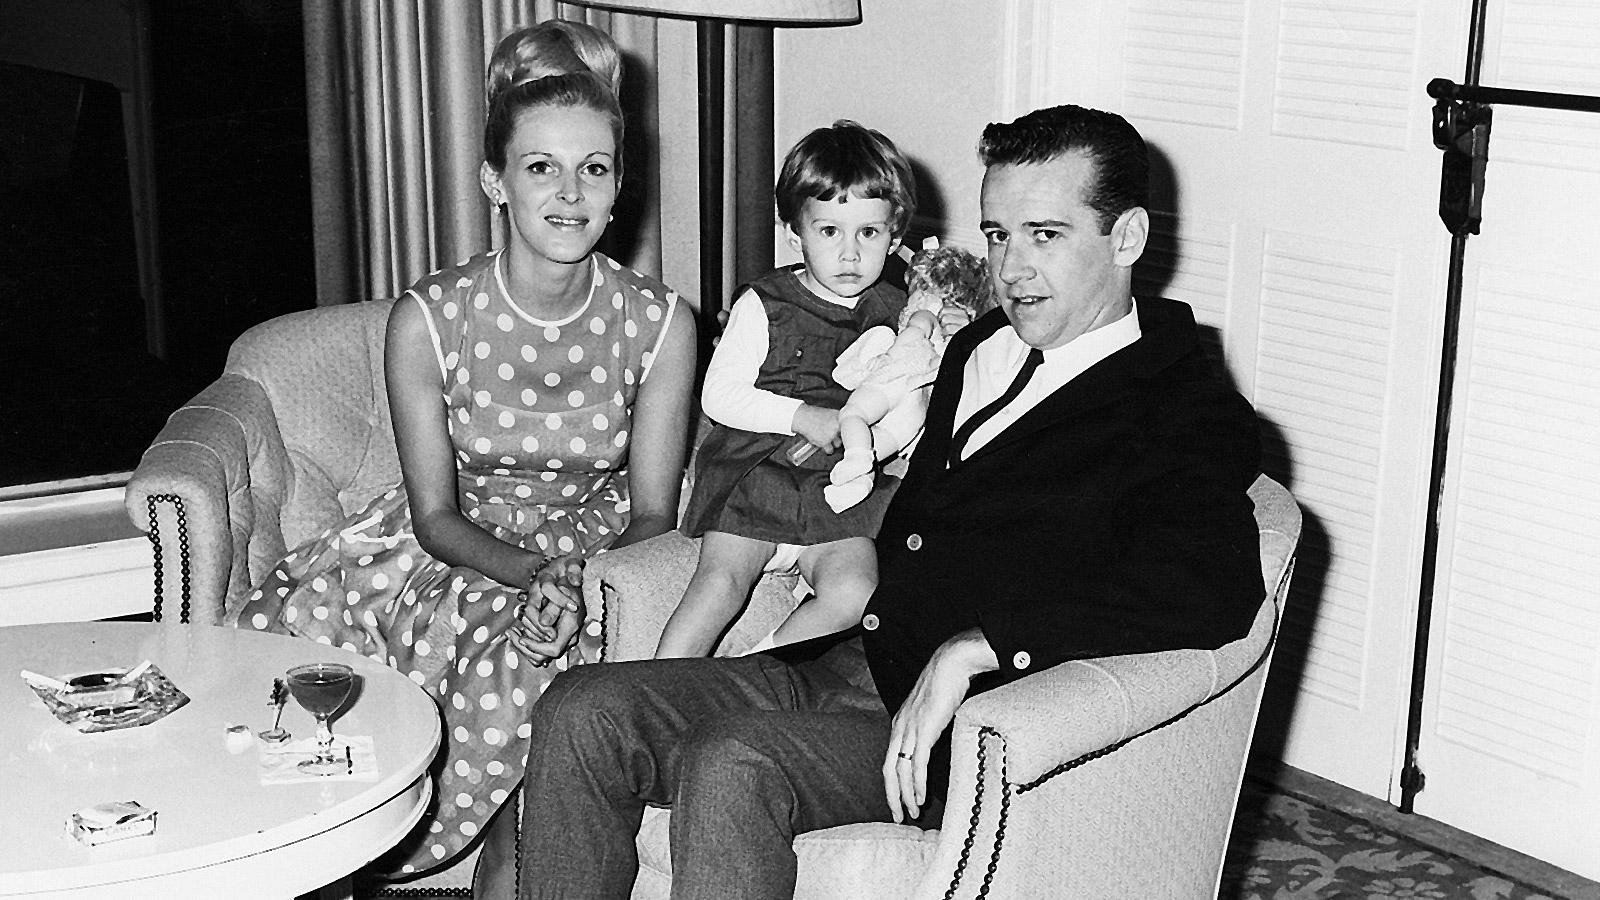 George, his wife Brenda, and only daughter Kelly, born June 15, 1963. George Carlin